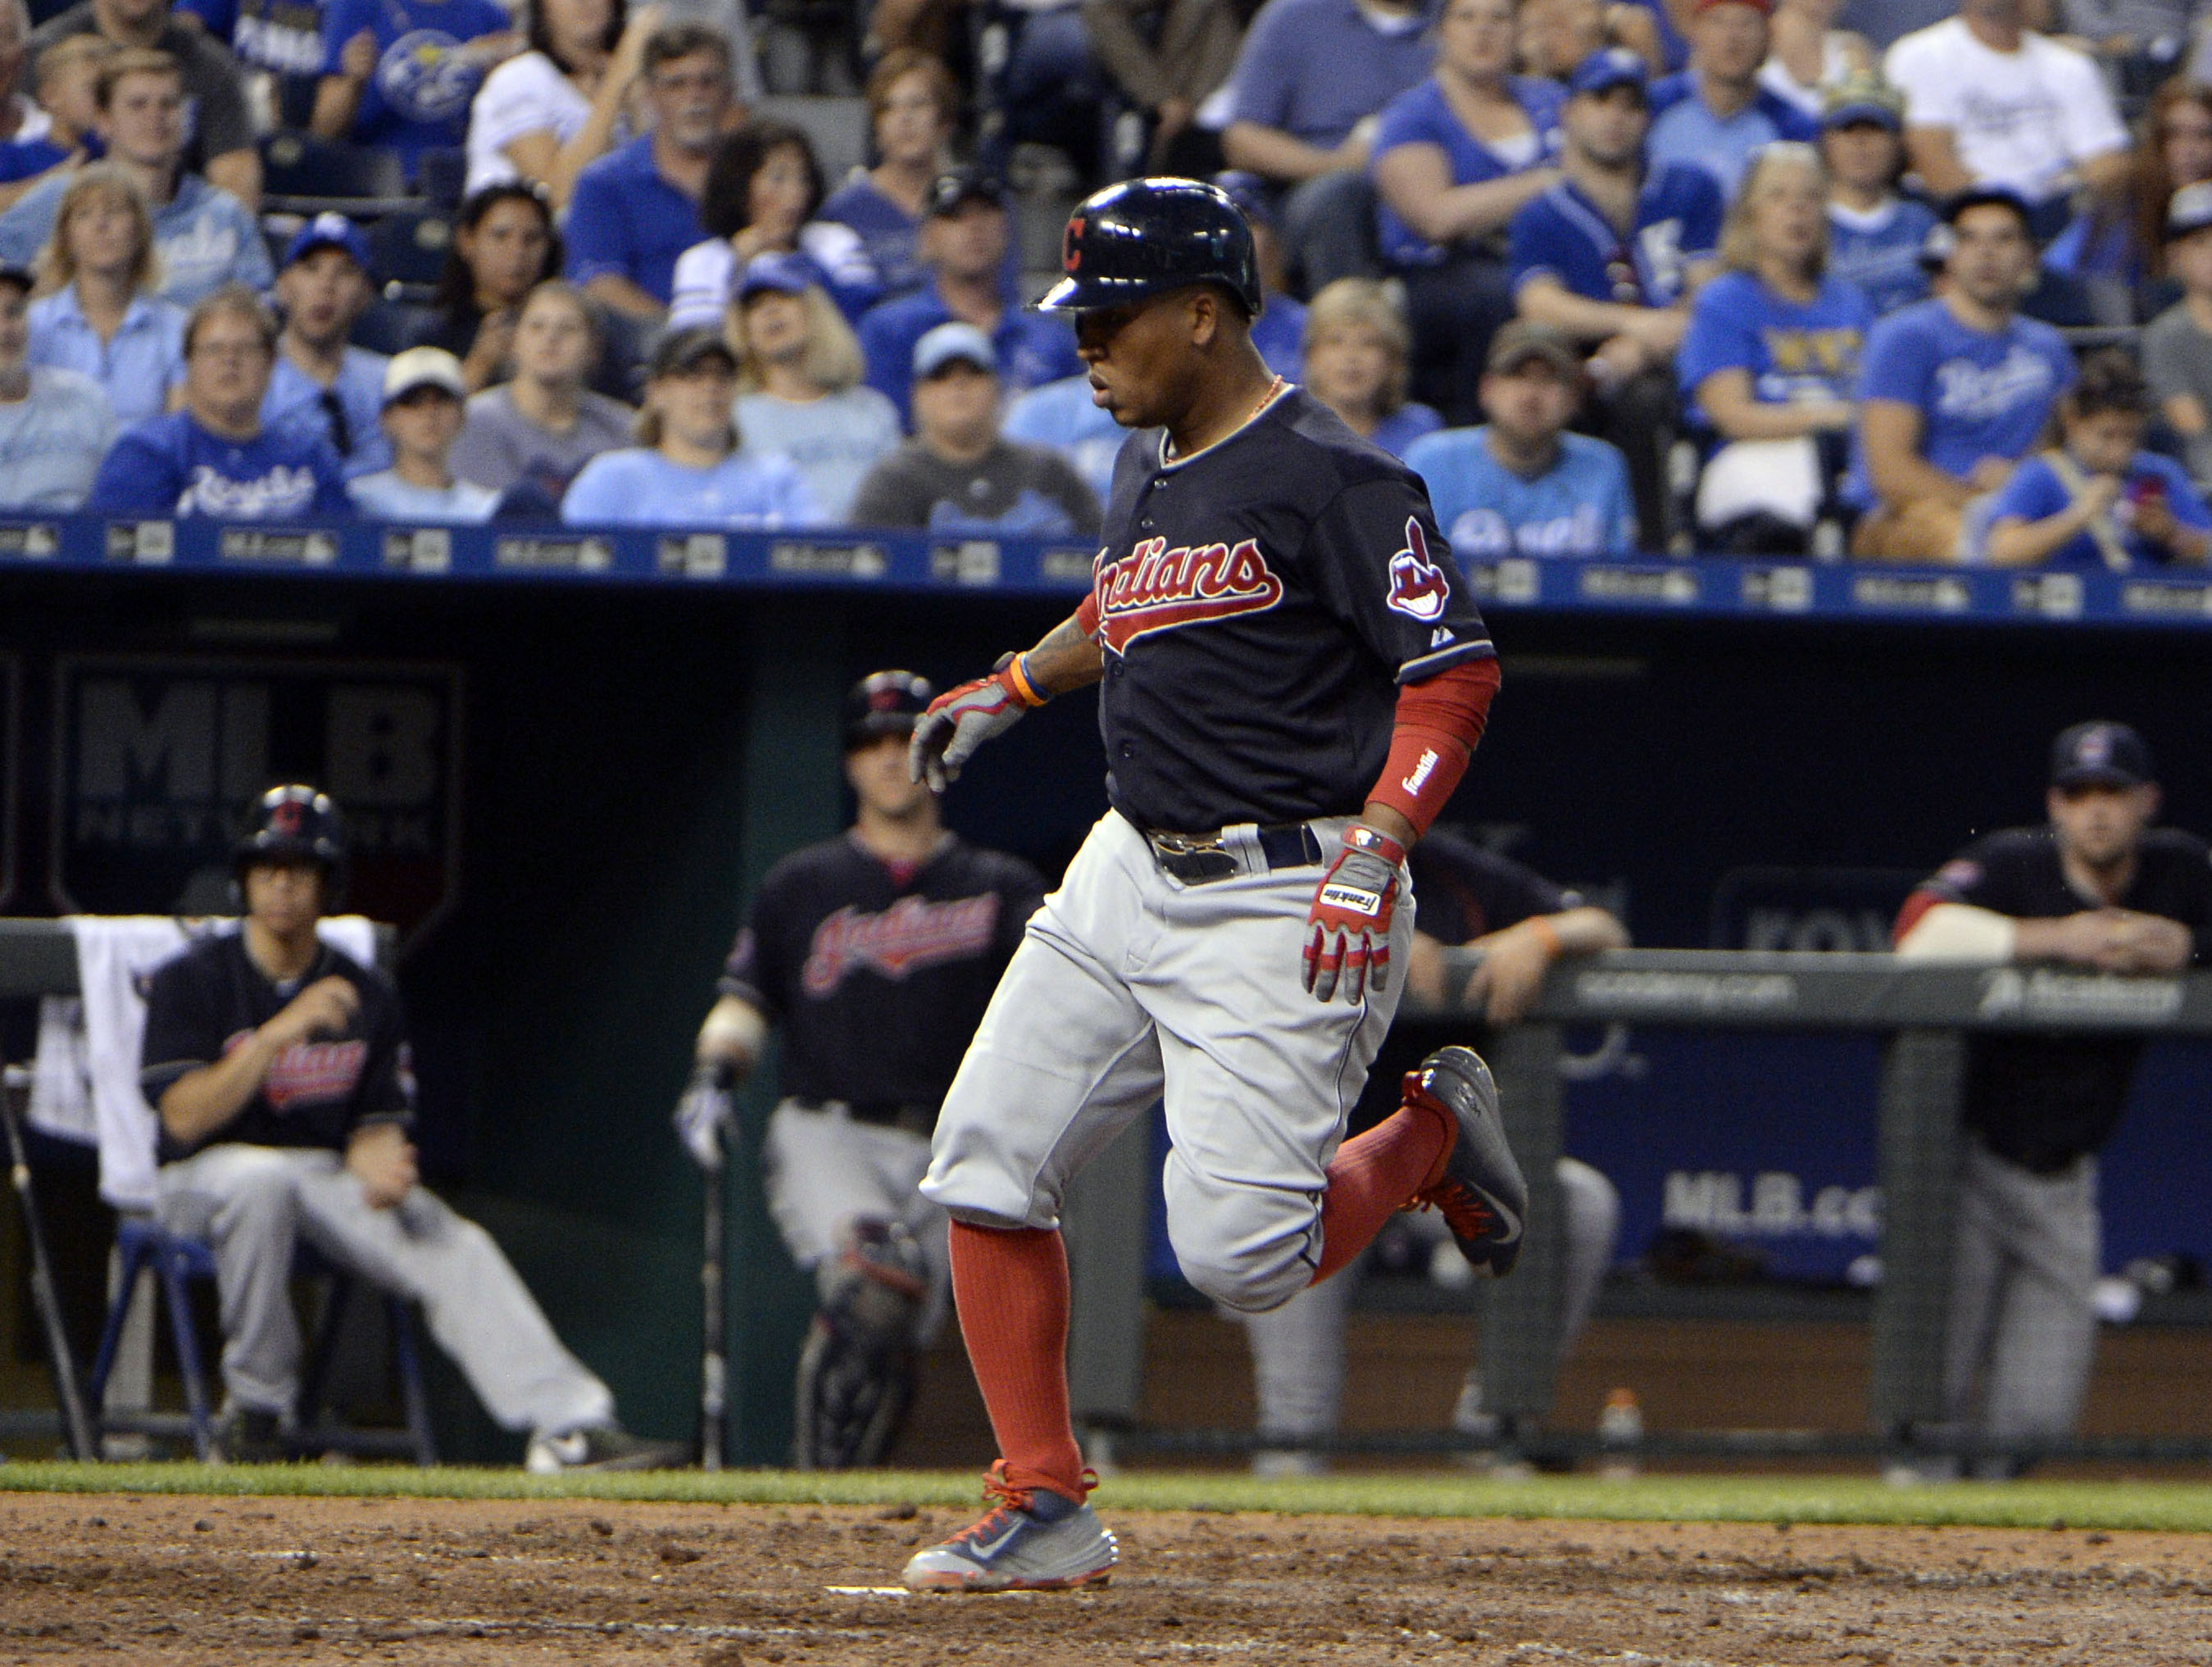 Jose Ramirez is likely the best bench player in all of the AL Central